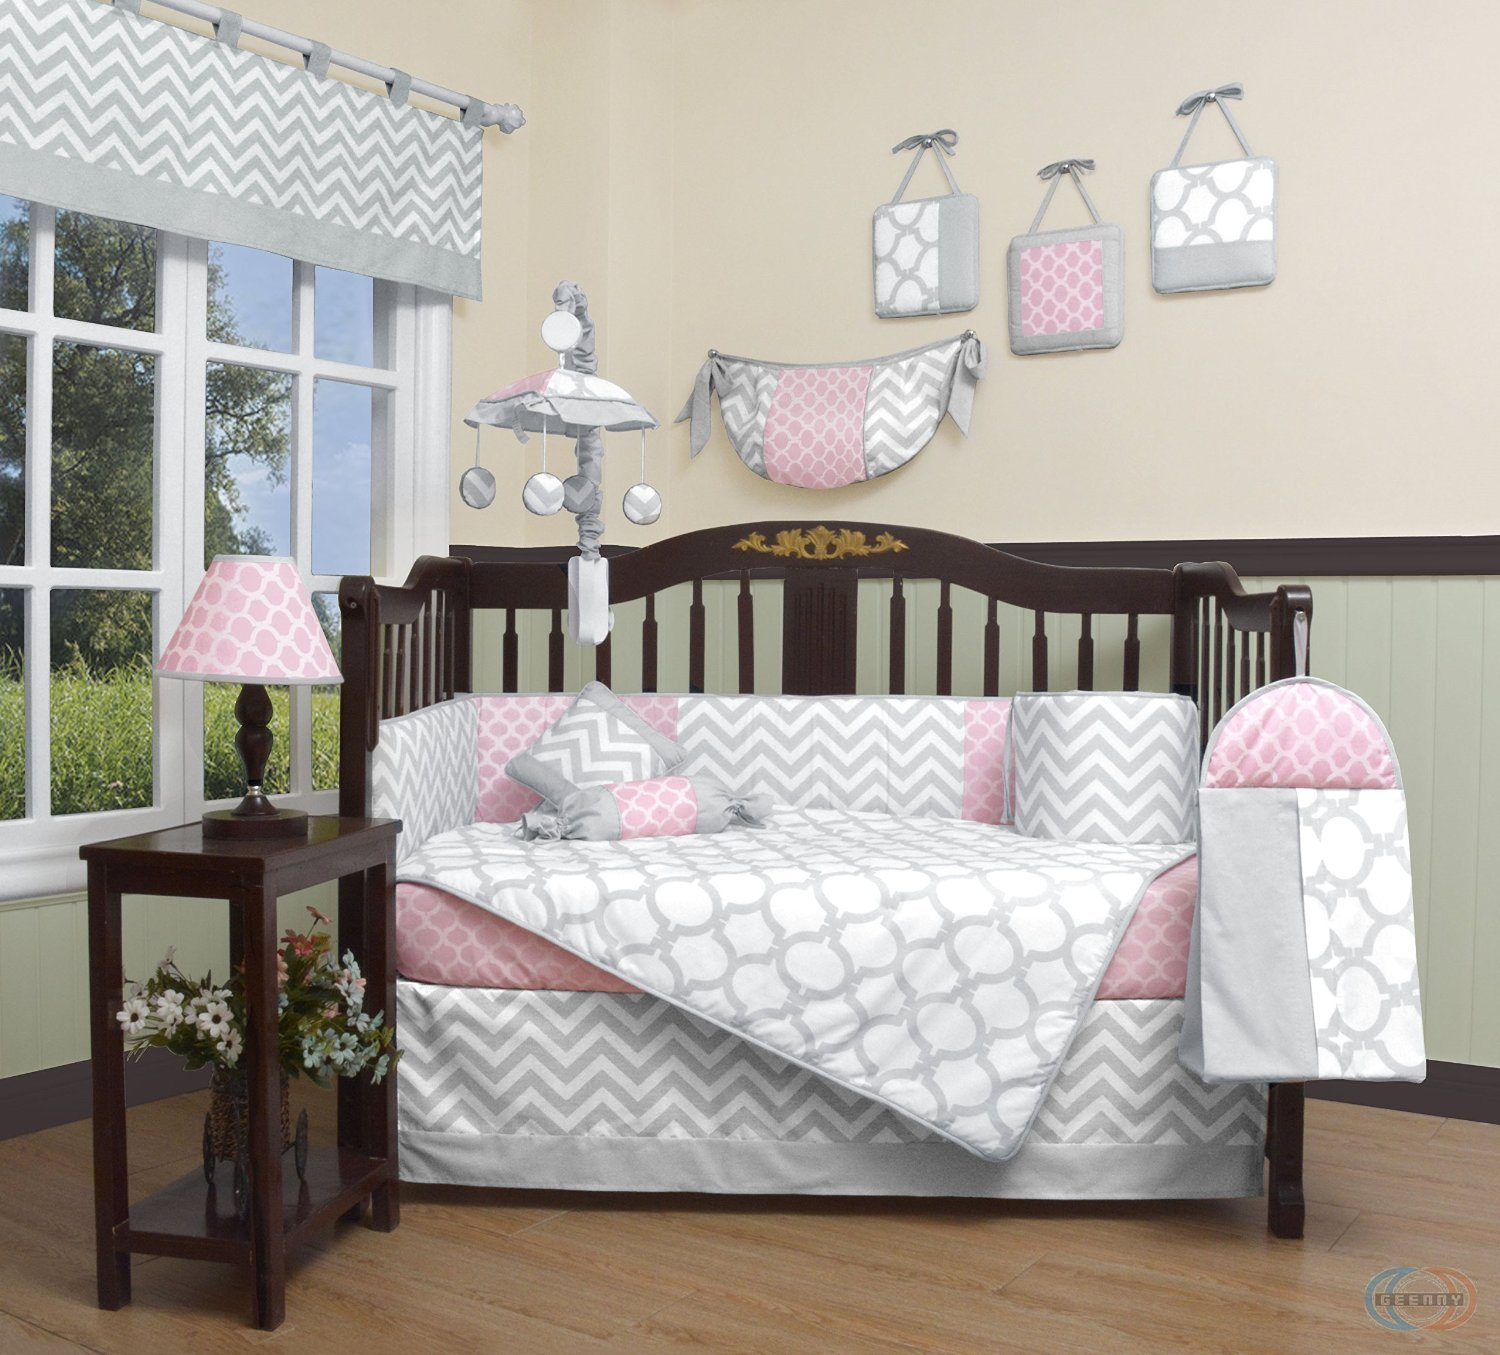 Amazon.com : GEENNY Boutique Baby 13 Piece Crib Bedding Set ...